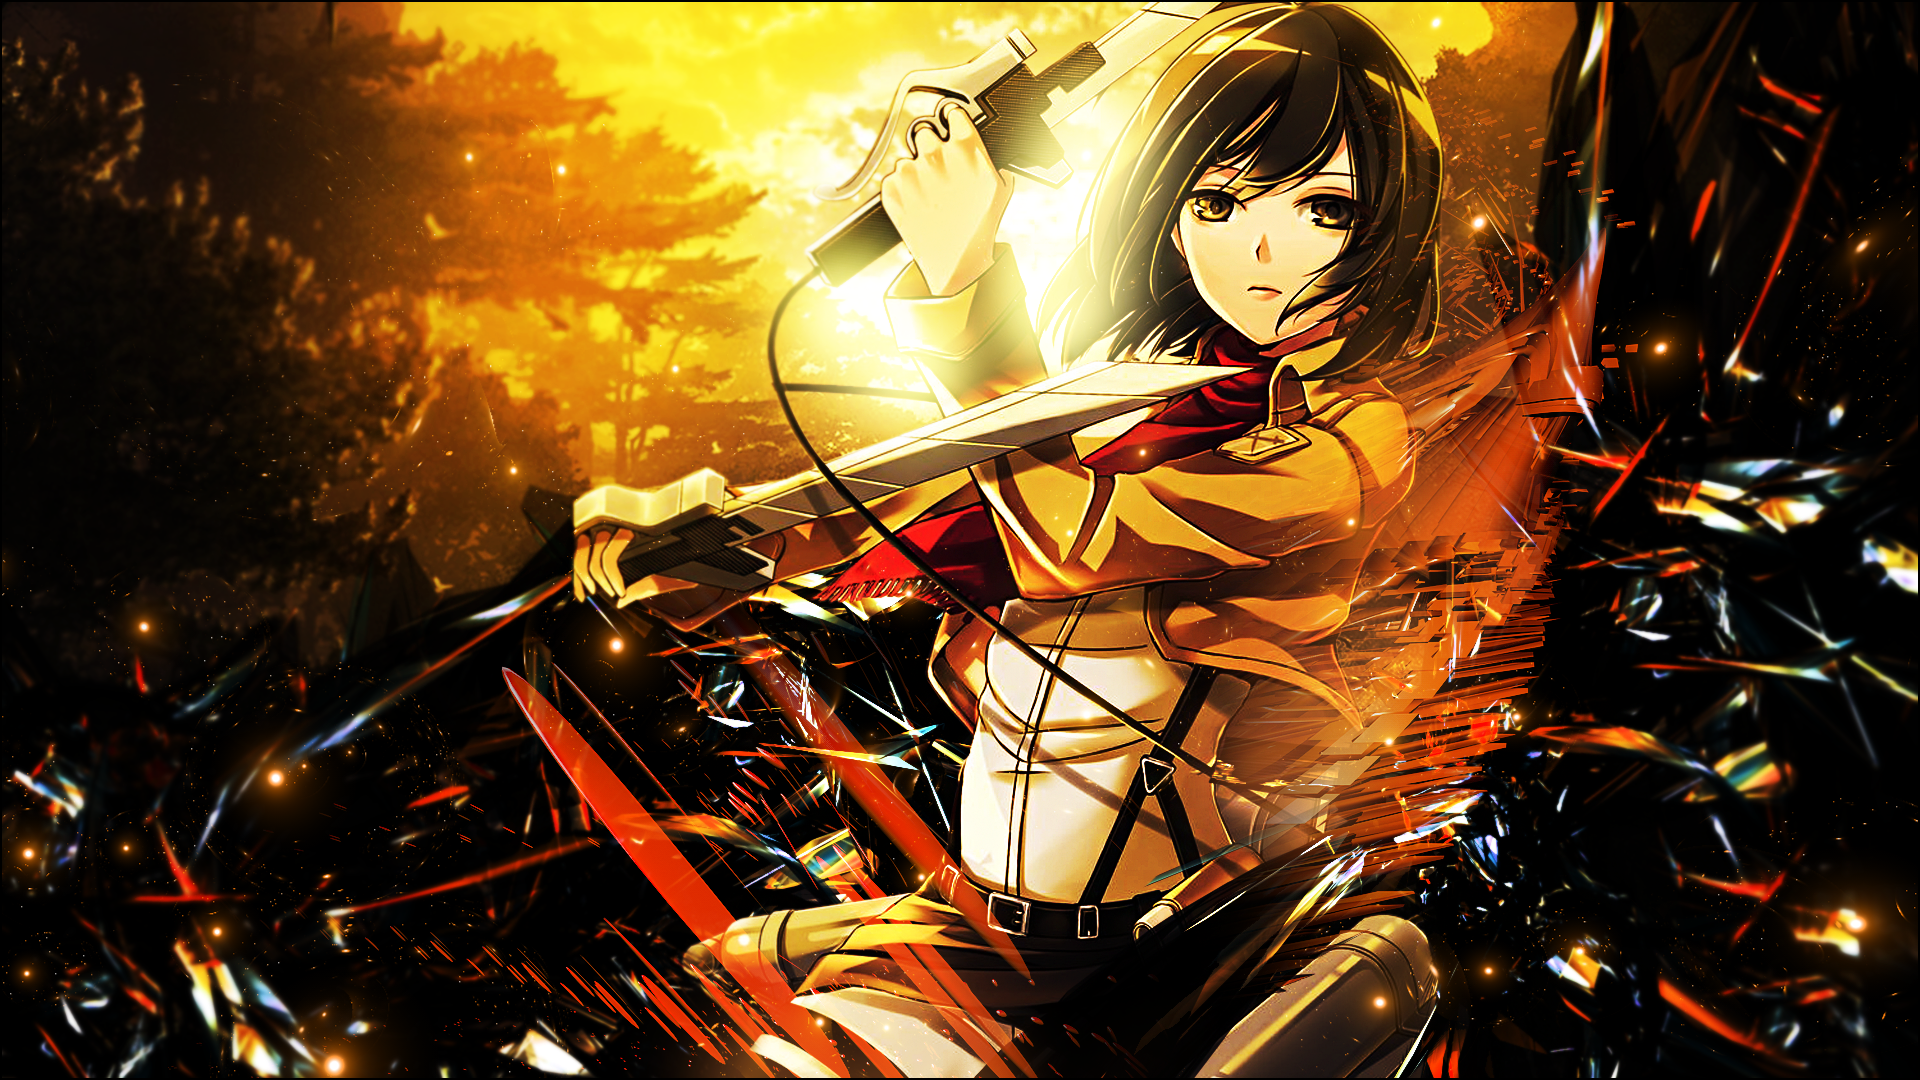 Great Wallpaper High Quality Attack On Titan - db5ccc77d7cad2c8e8104bbde2e2034e  Picture_396082.png